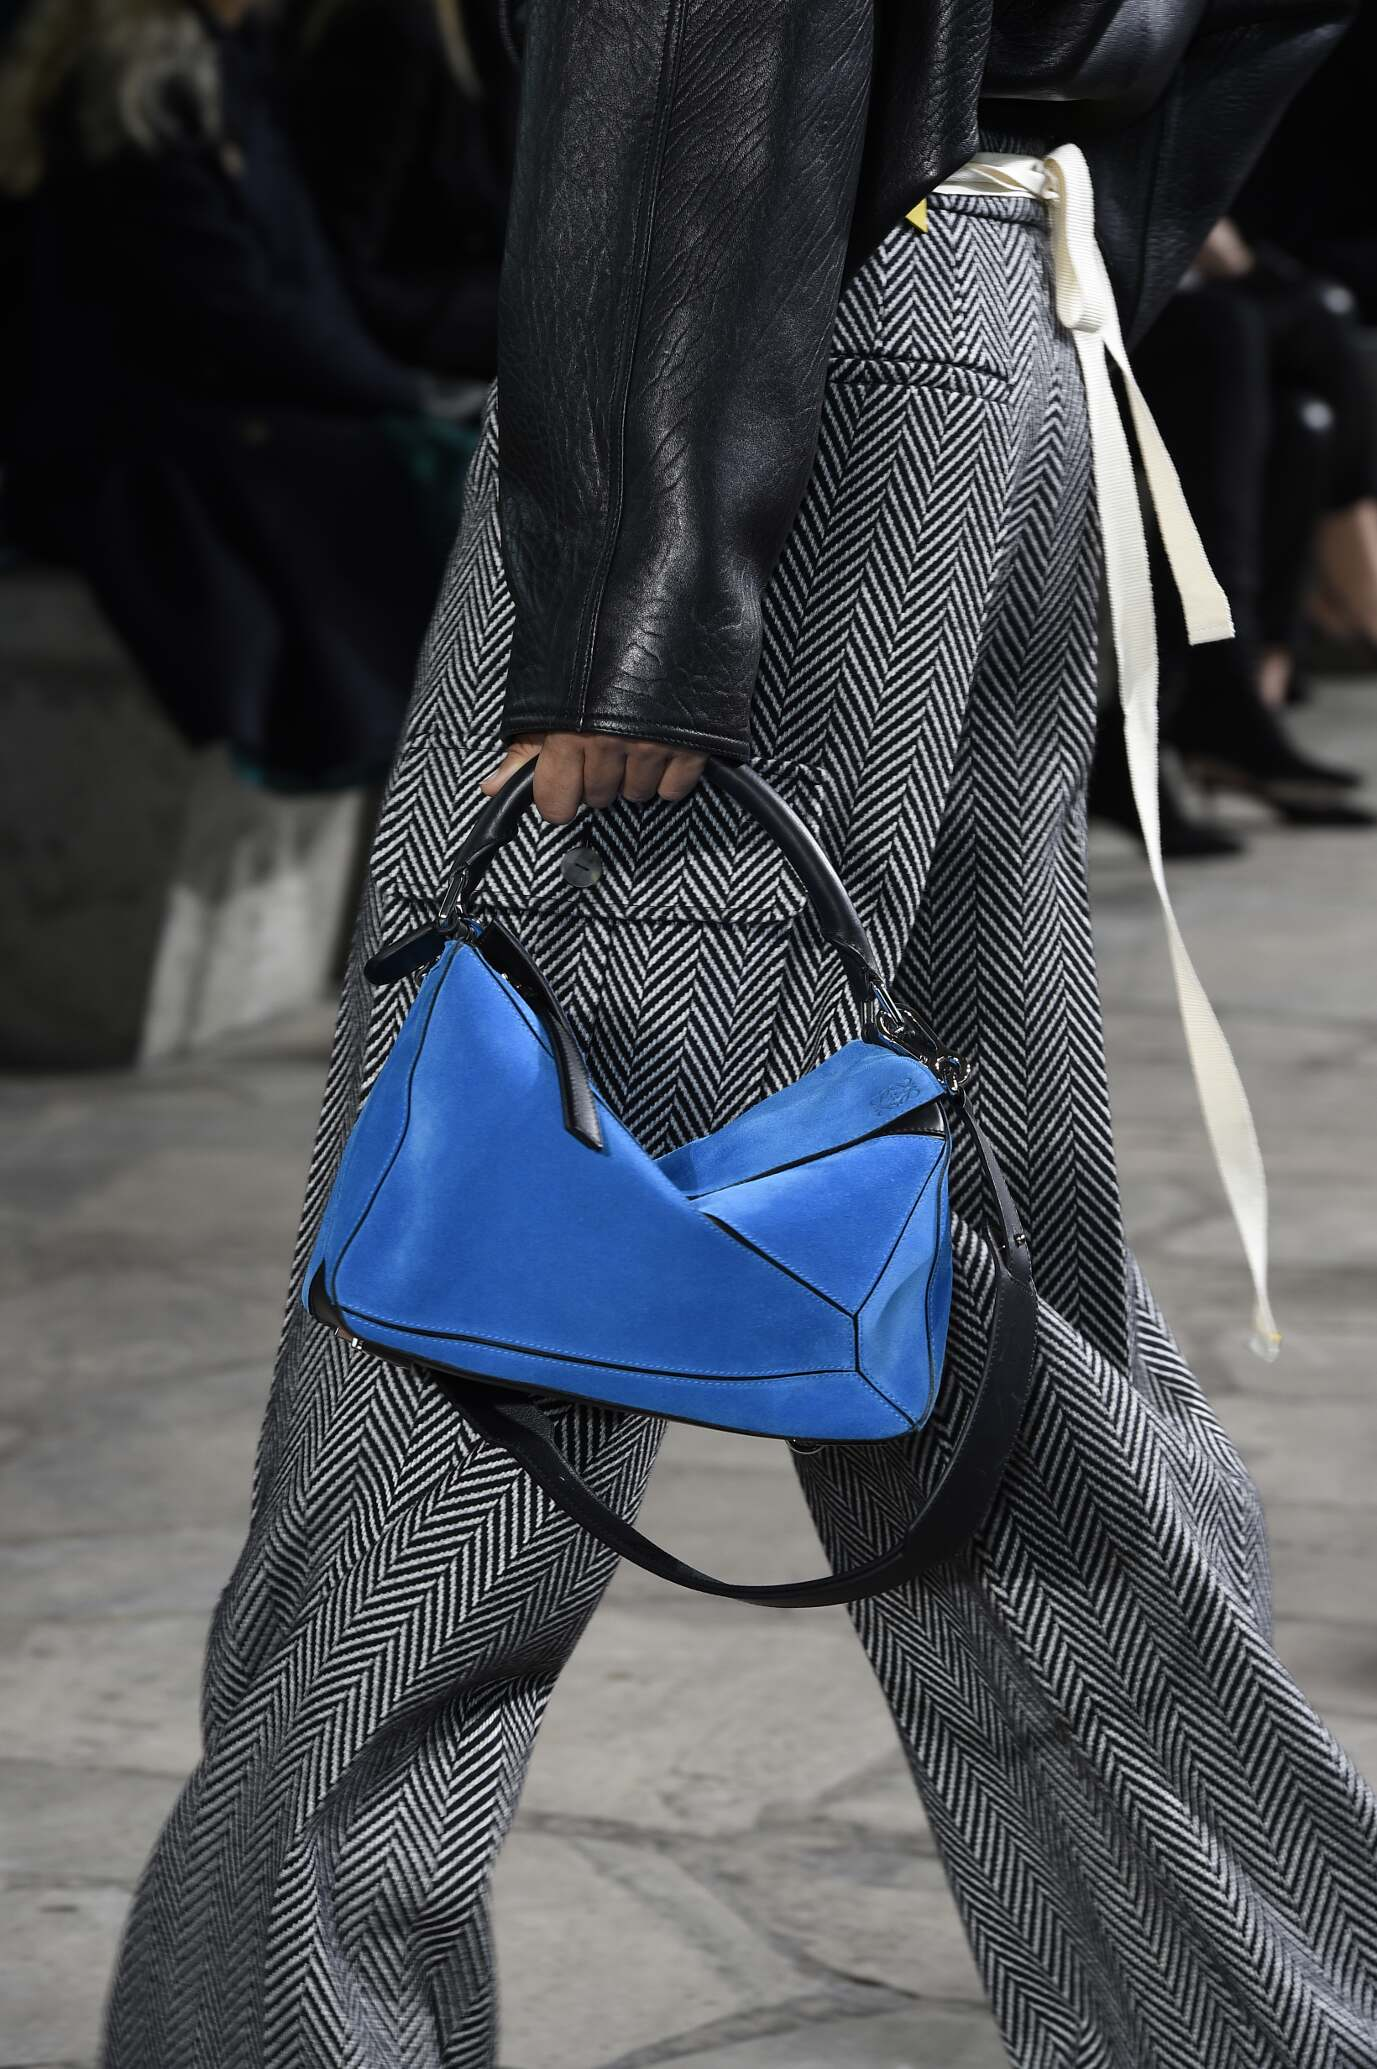 Loewe Bag Detail Collection Fashion Show FW 2015 2016